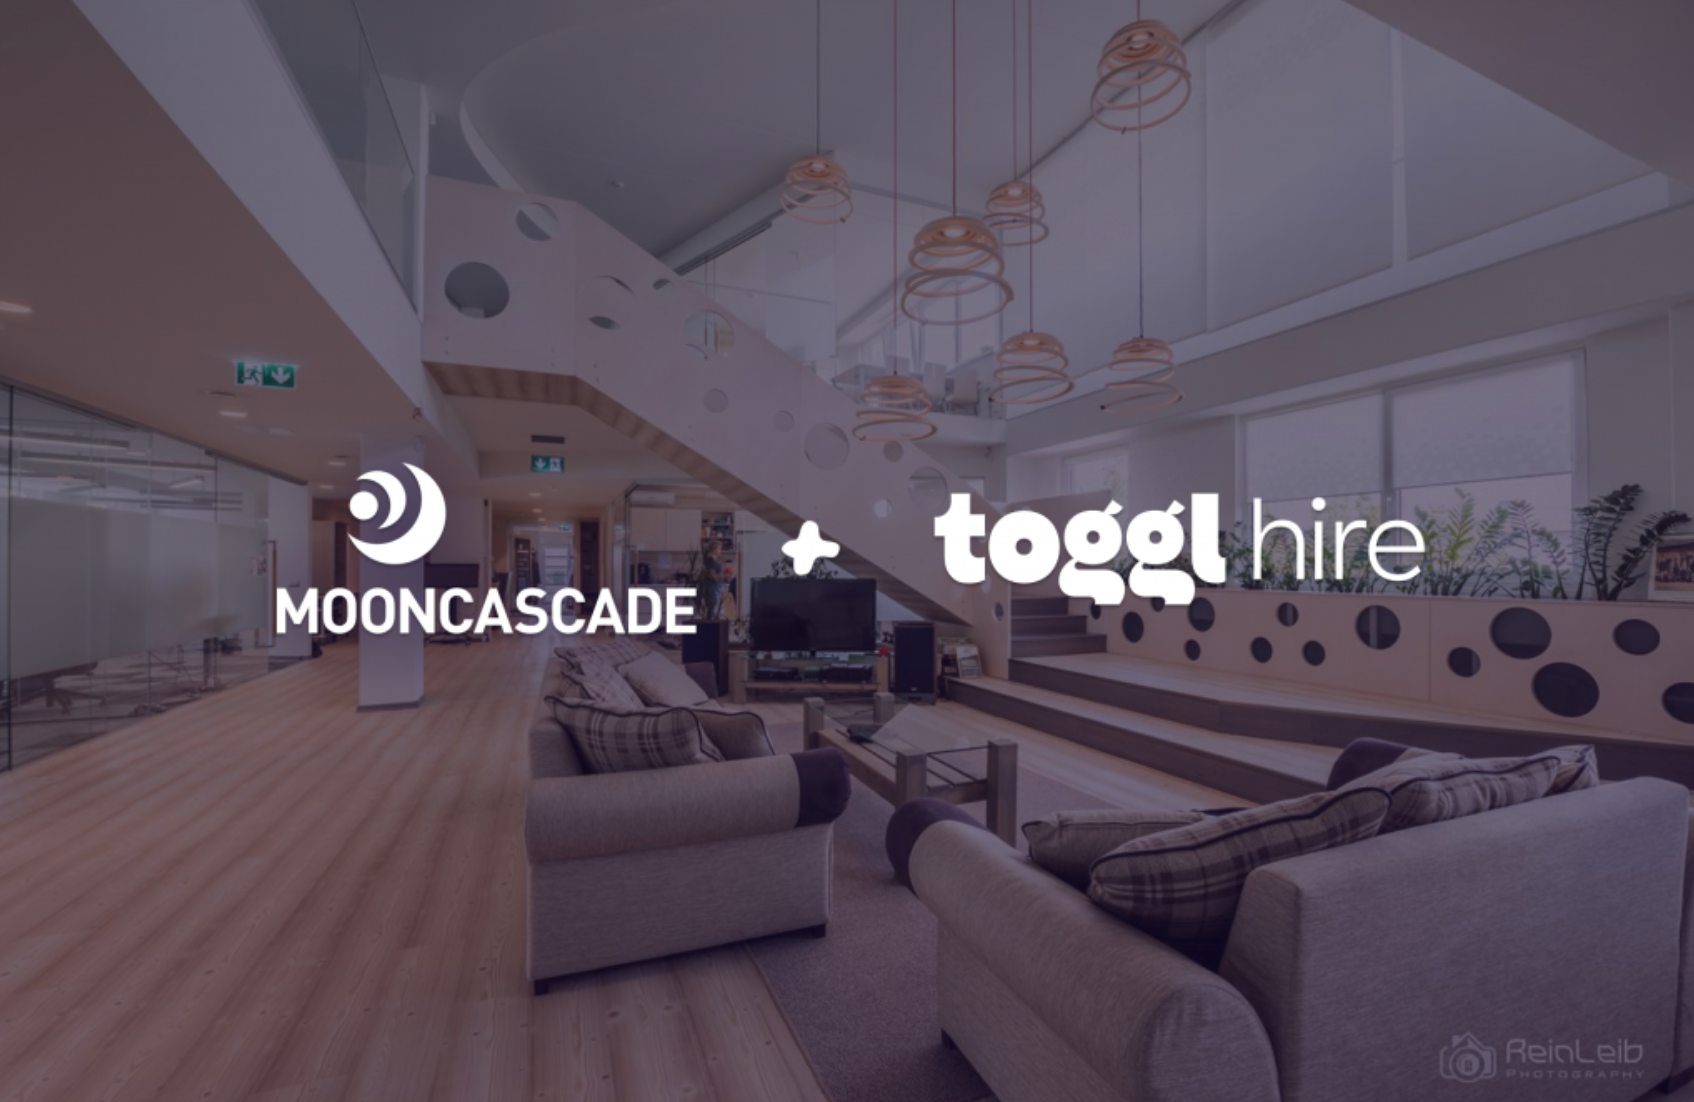 Mooncascade and toggl hire logos overlayed on image of big lounge